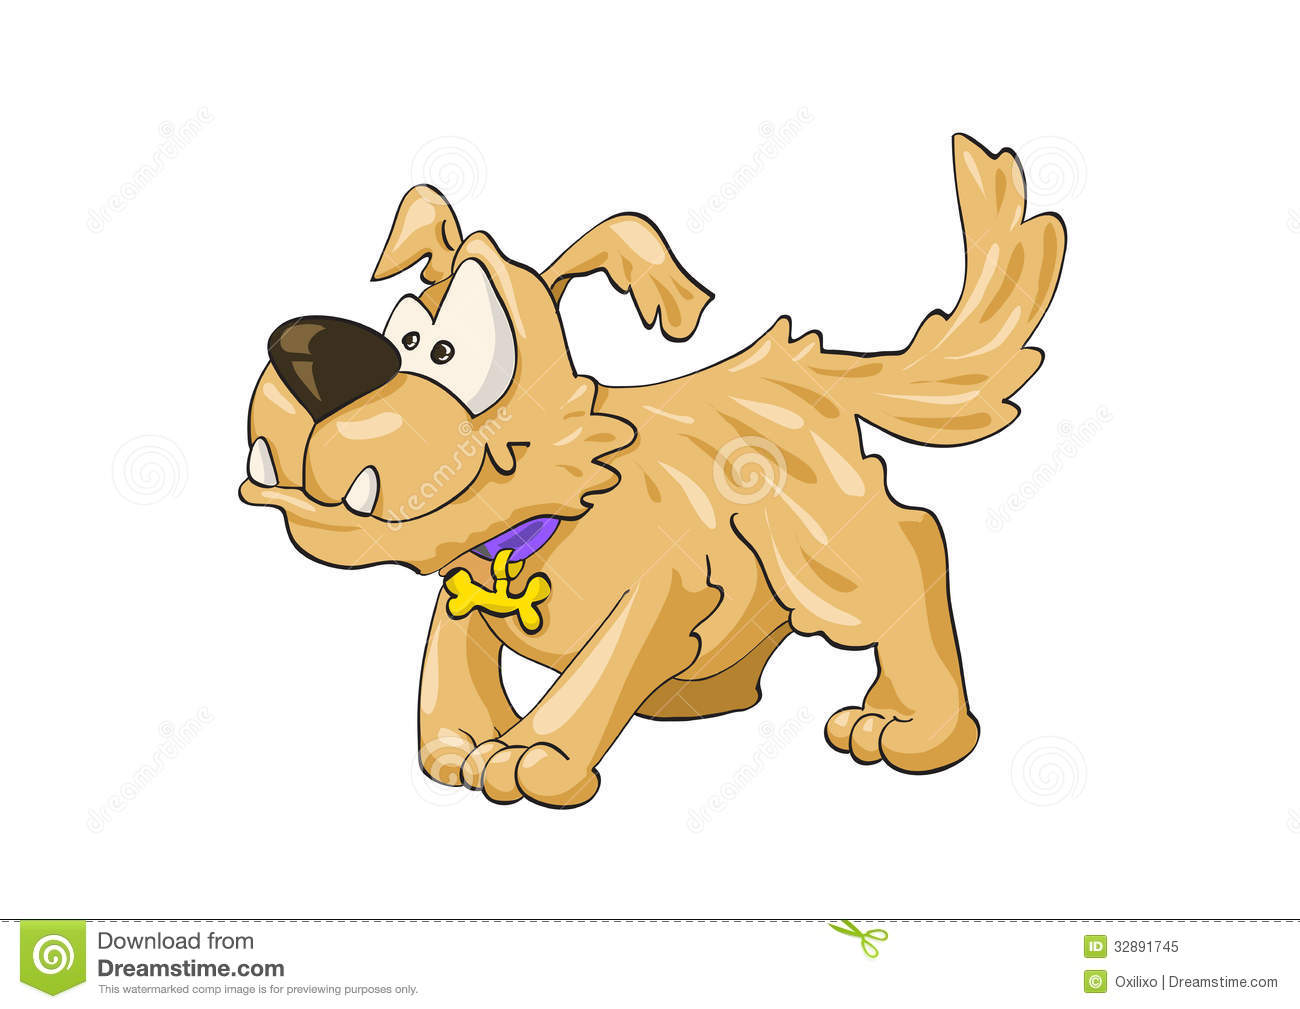 Mongrel dog clipart.